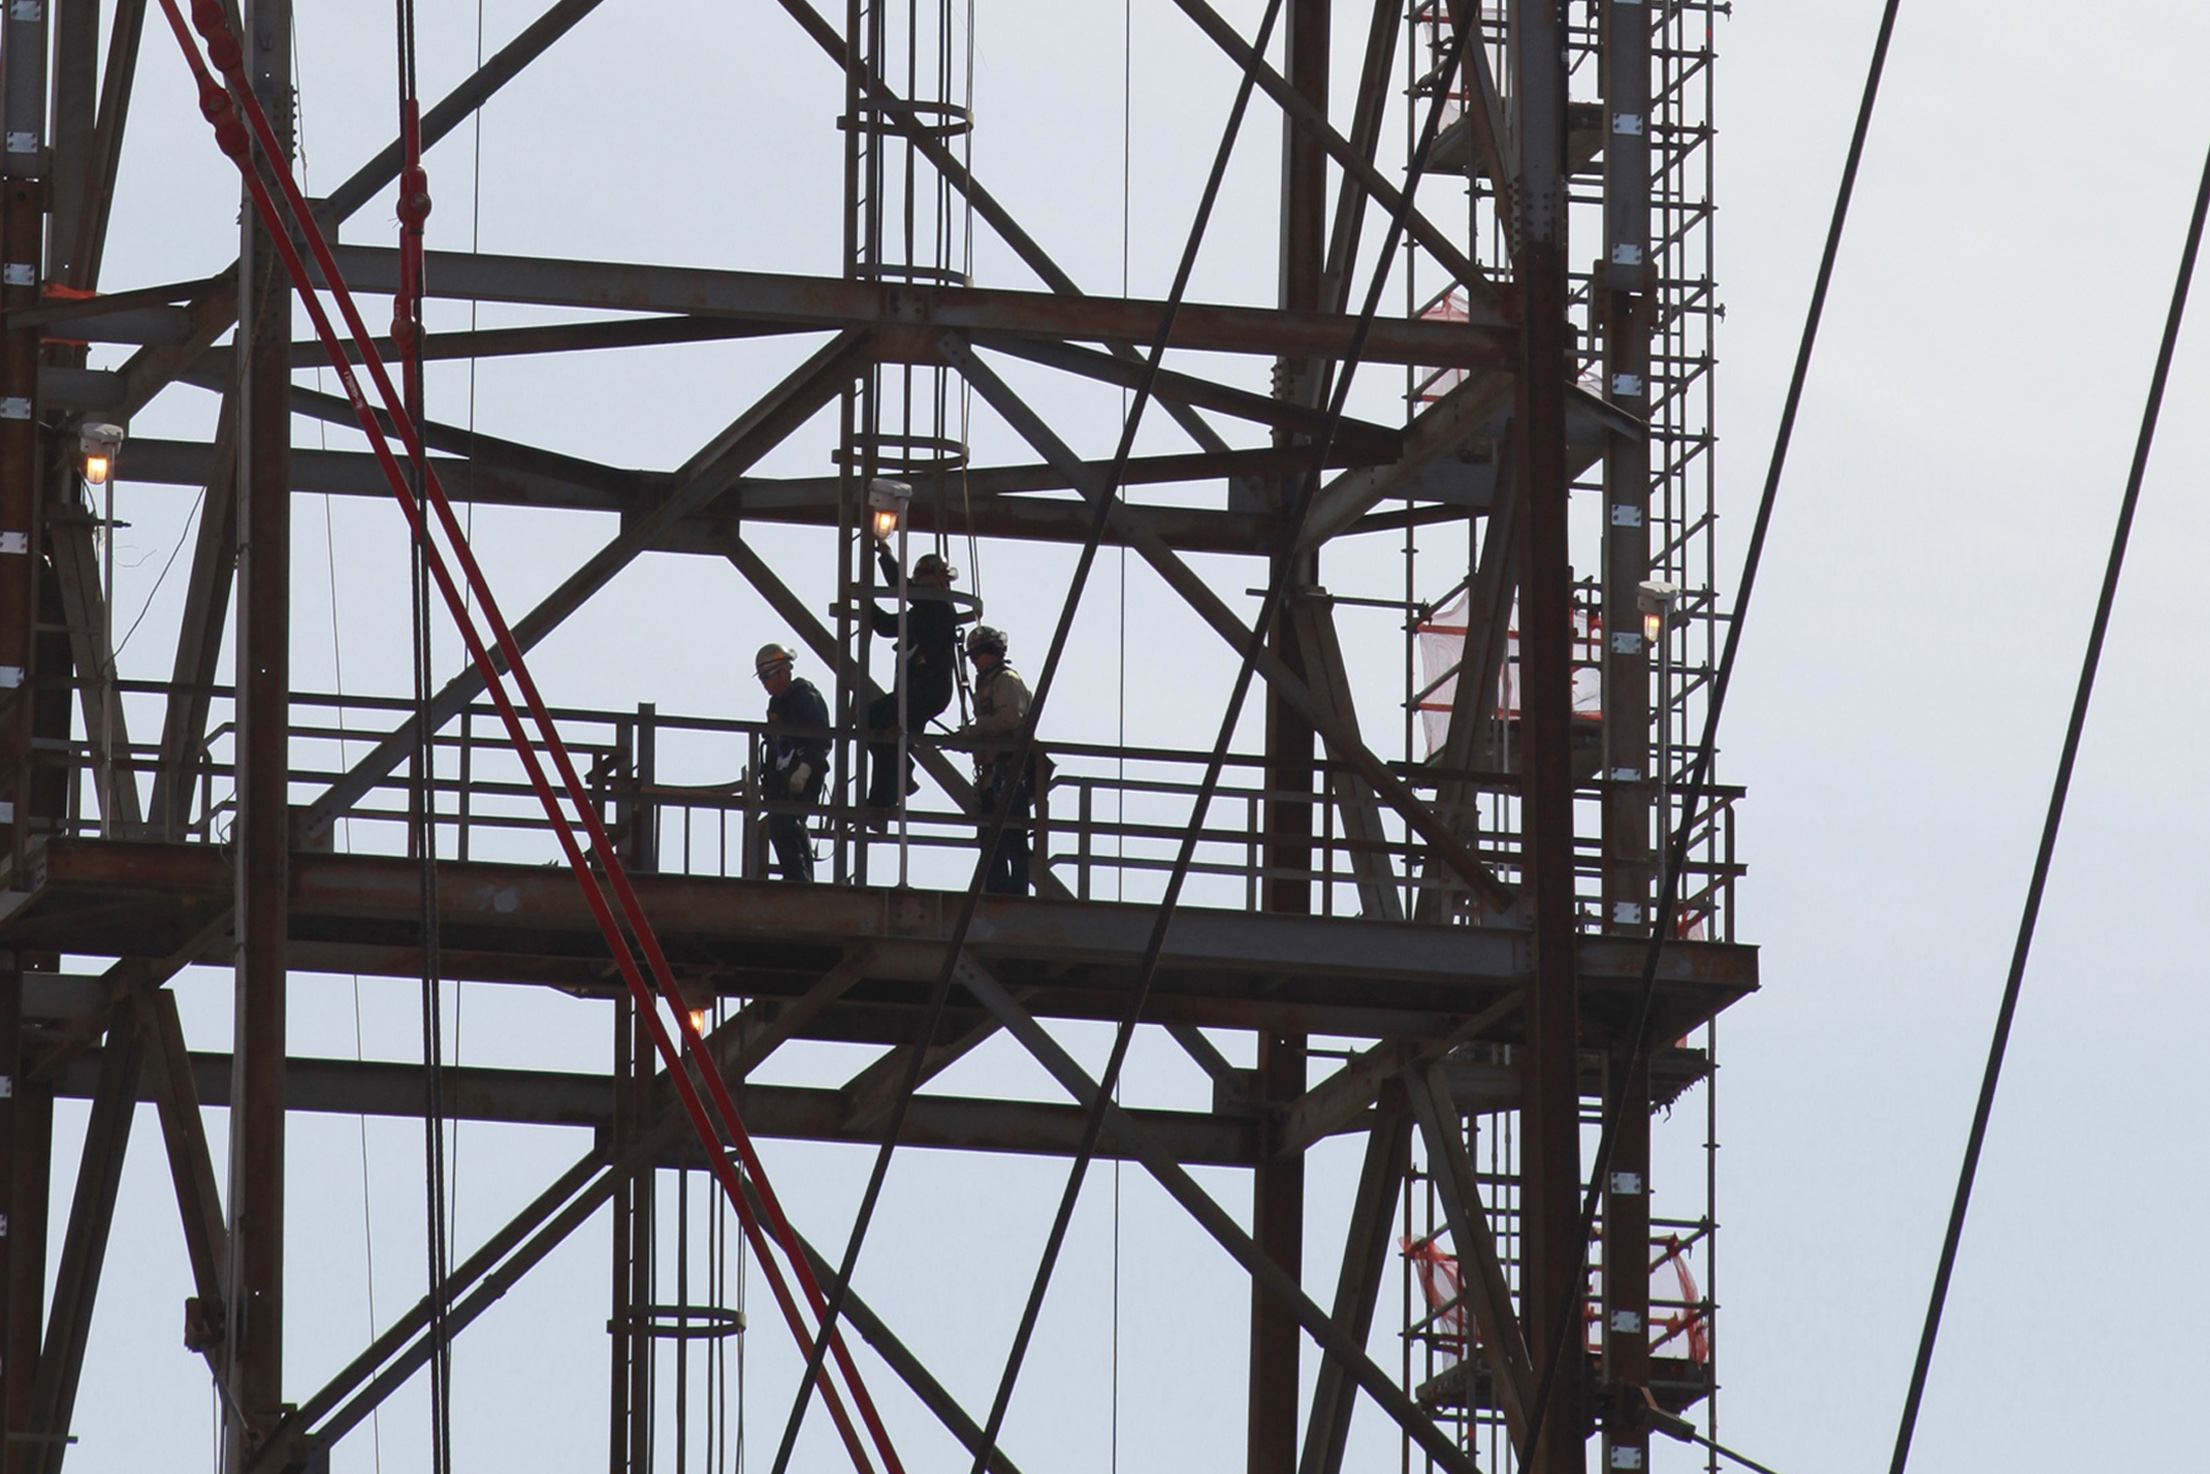 Refinery workers on a crane tower inside the LyondellBasell oil refinery in Houston, Texas March 6, 2013. REUTERS/Donna Carson